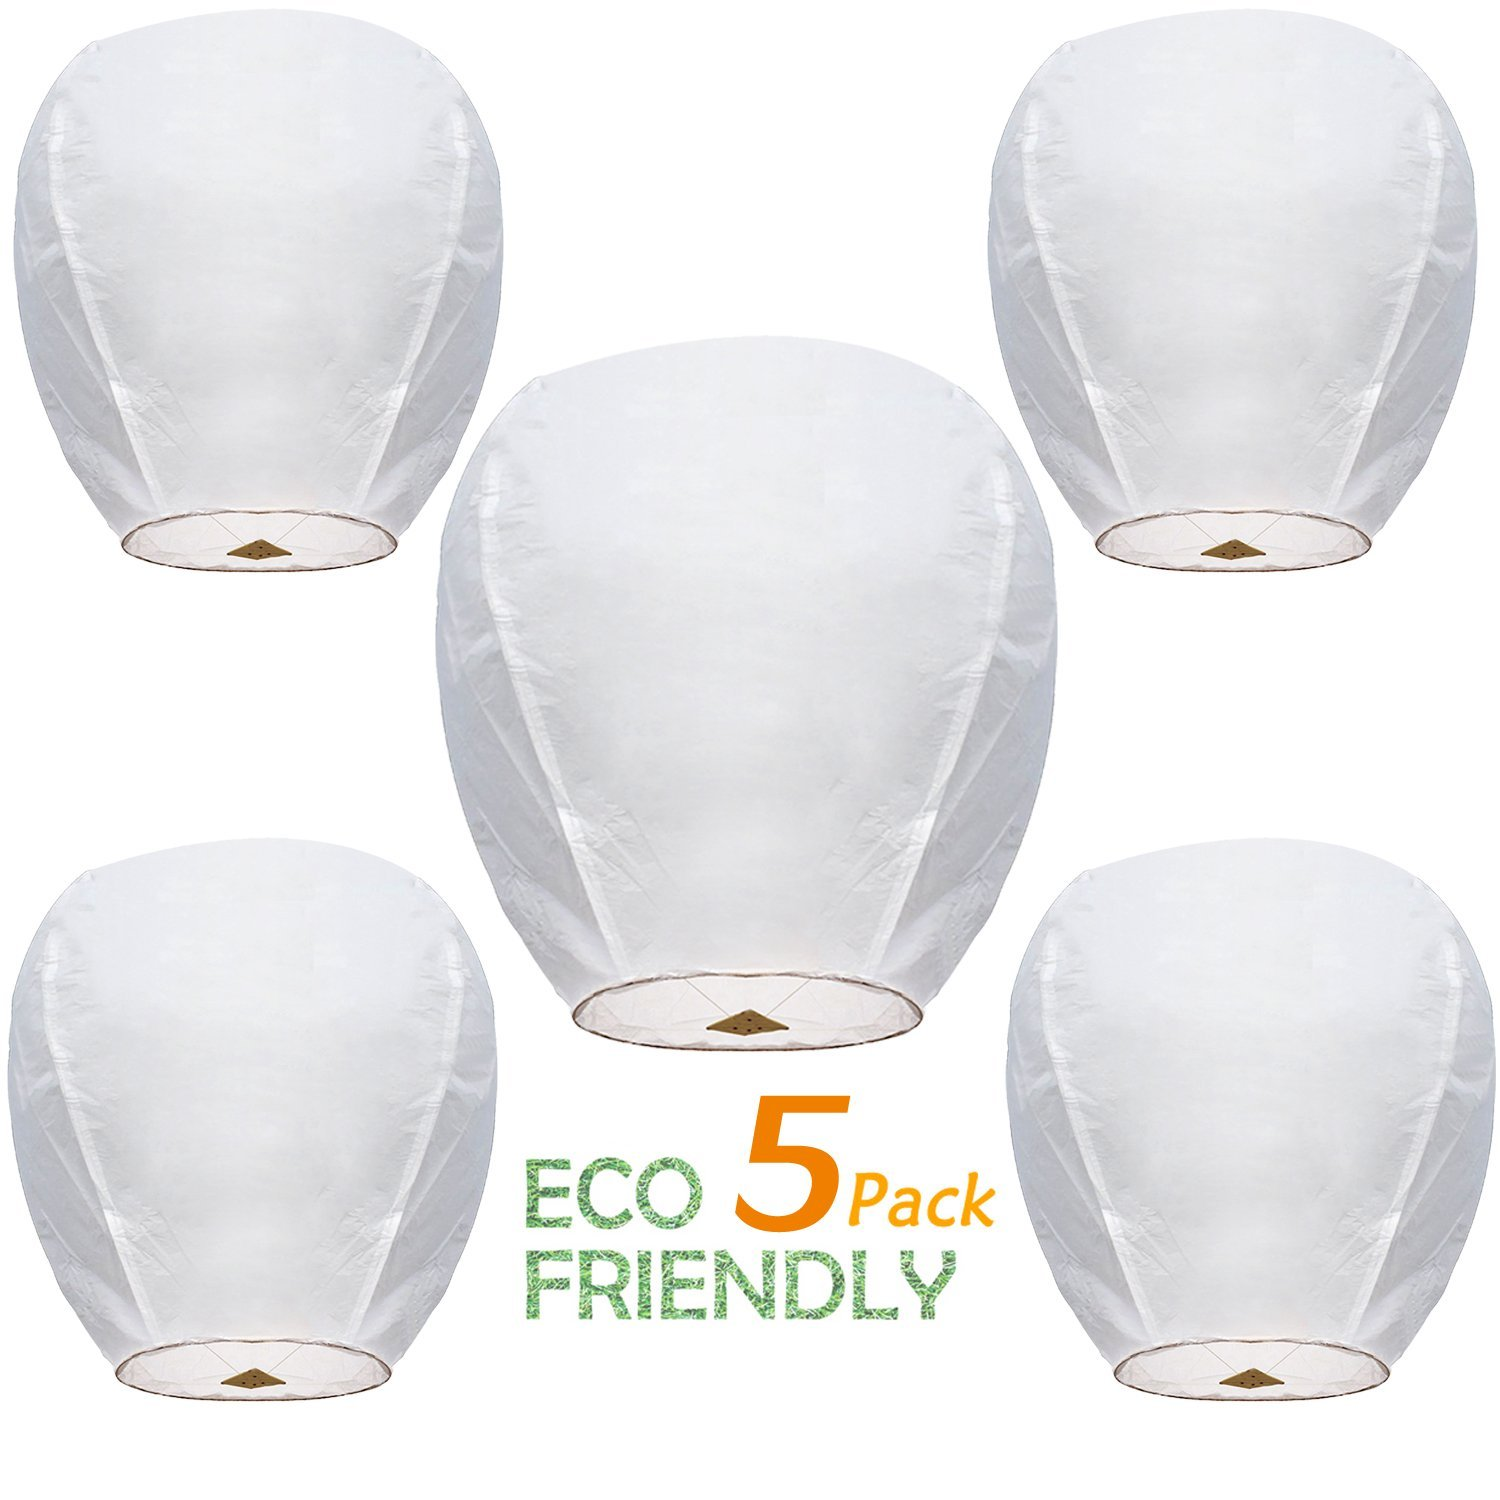 Chinese Sky Lanterns ECO Wire-Free Flying Chinese Sky Lanterns (5 Pack) - 100% Biodegradable, Environmentally Friendly Lanterns! by SWENAFER